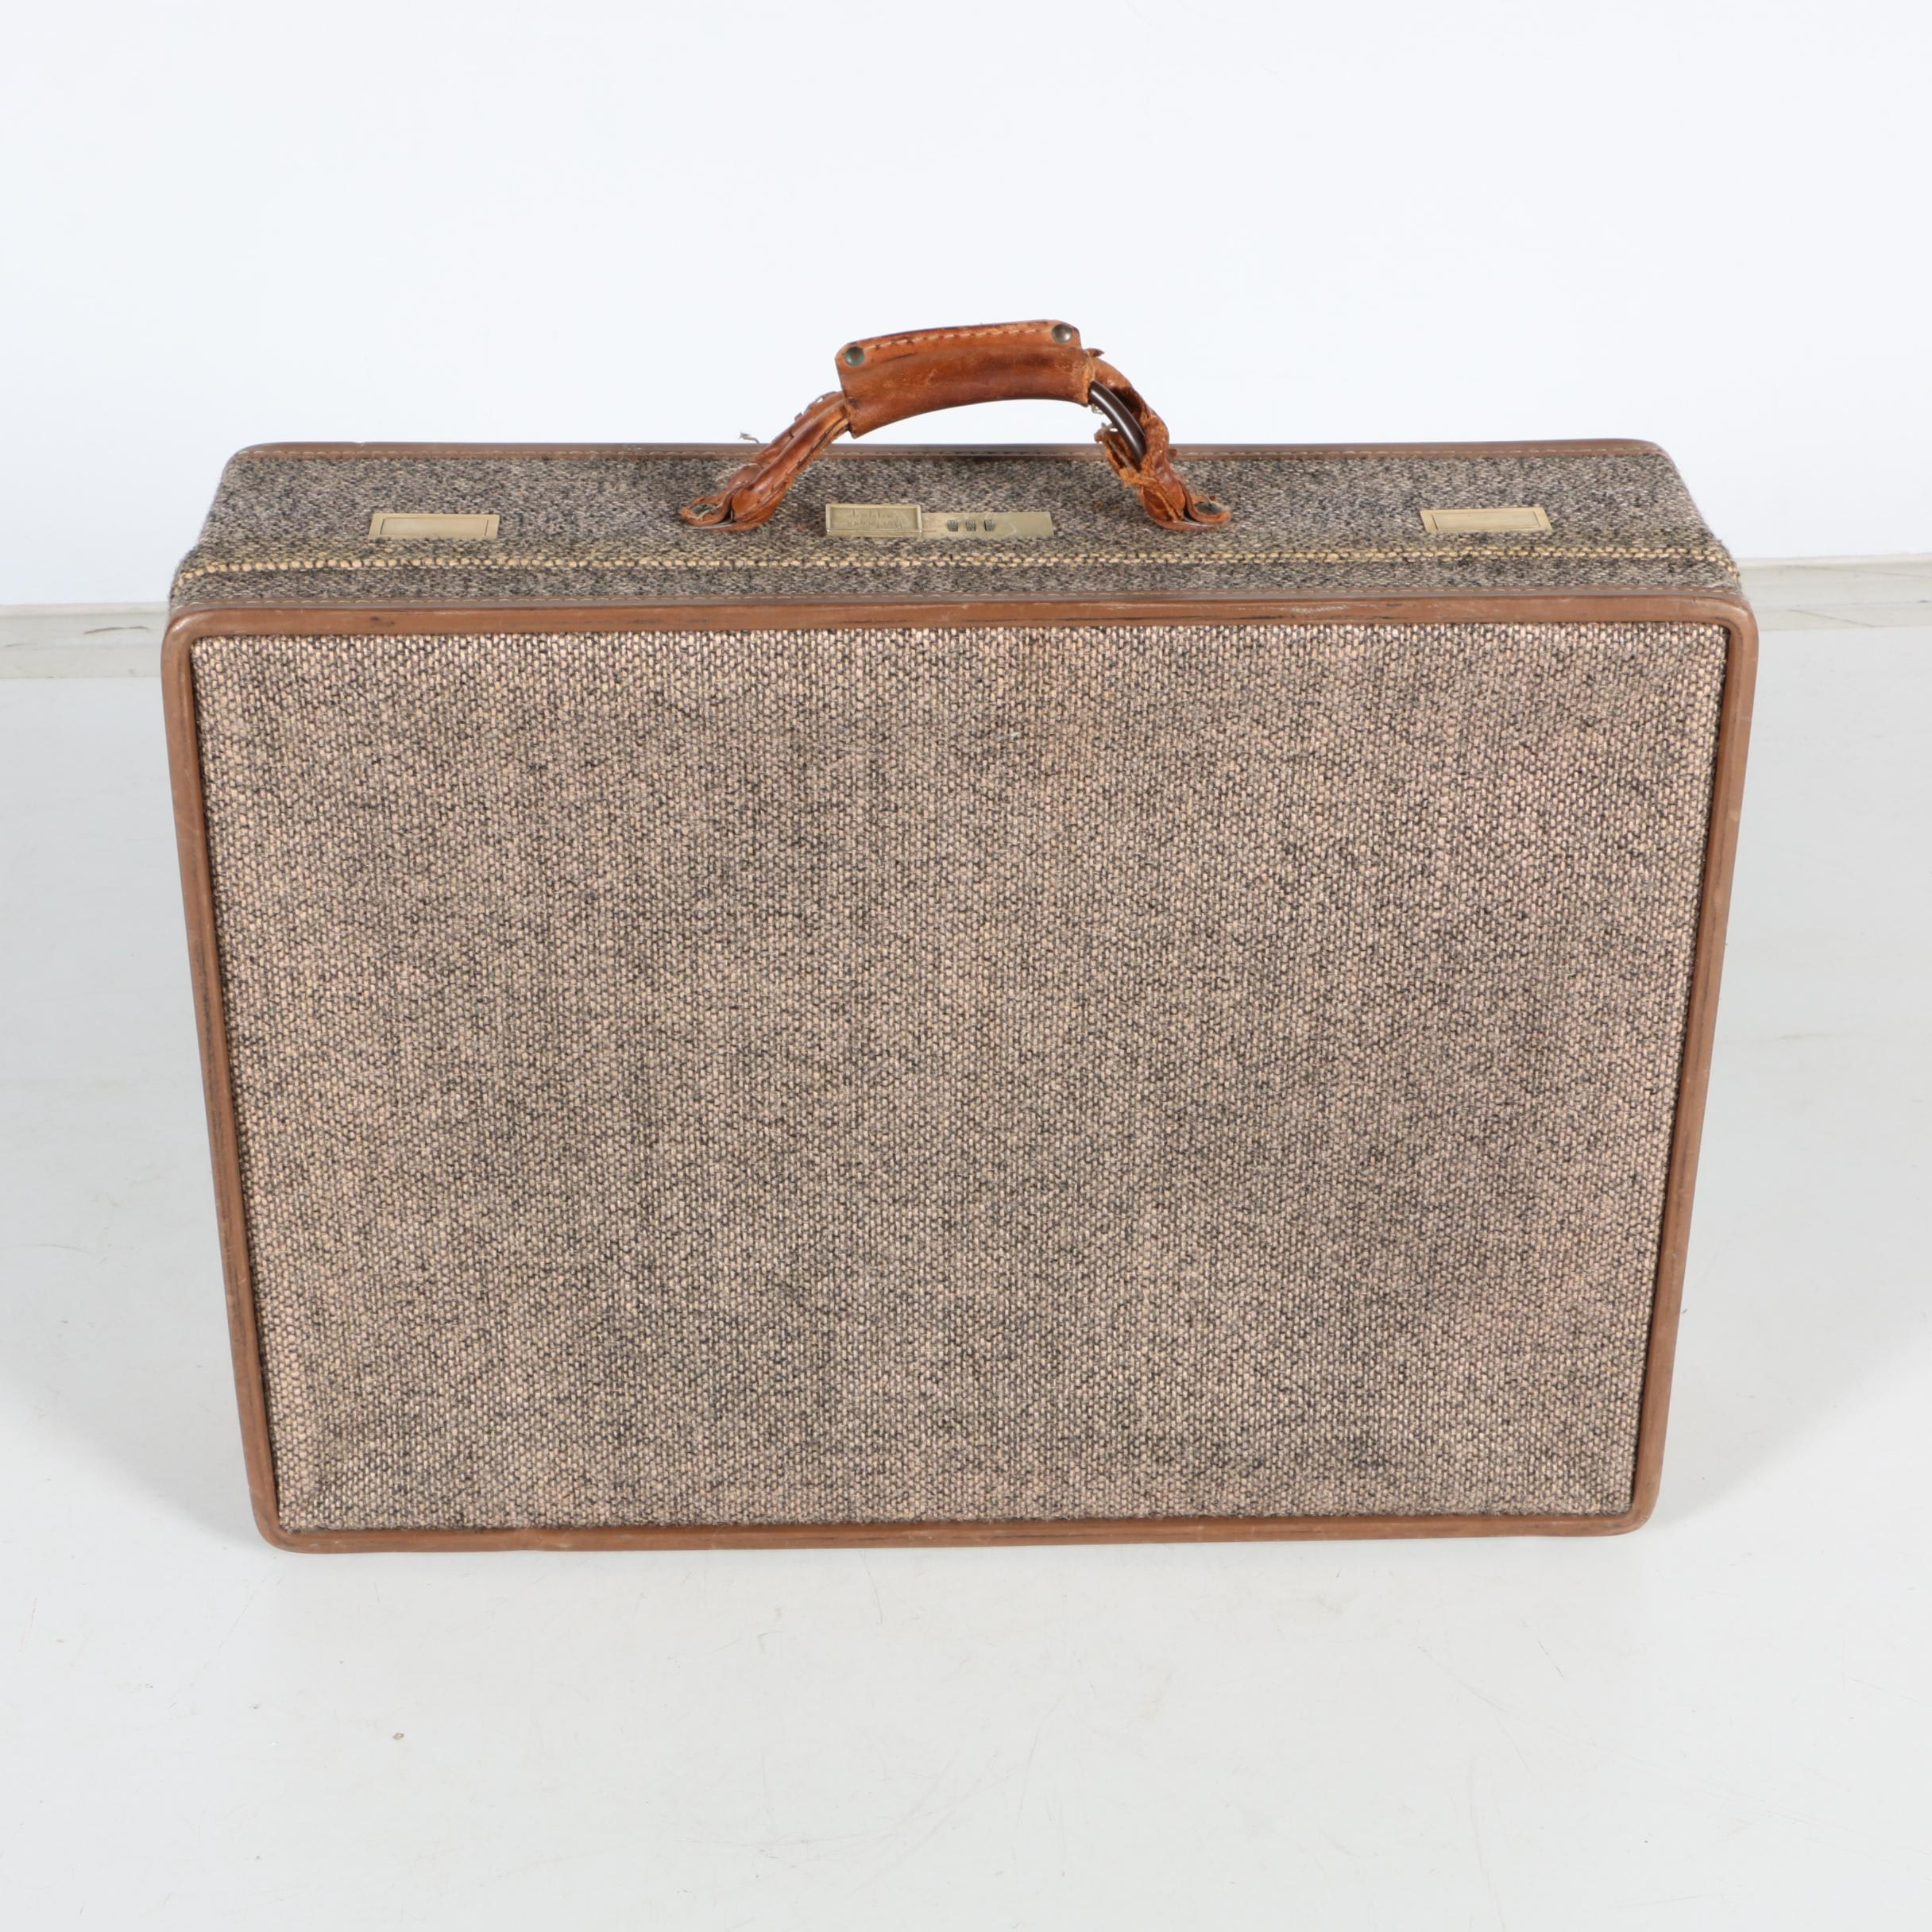 Vintage Hartmann Luggage Tweed and Leather Suitcase